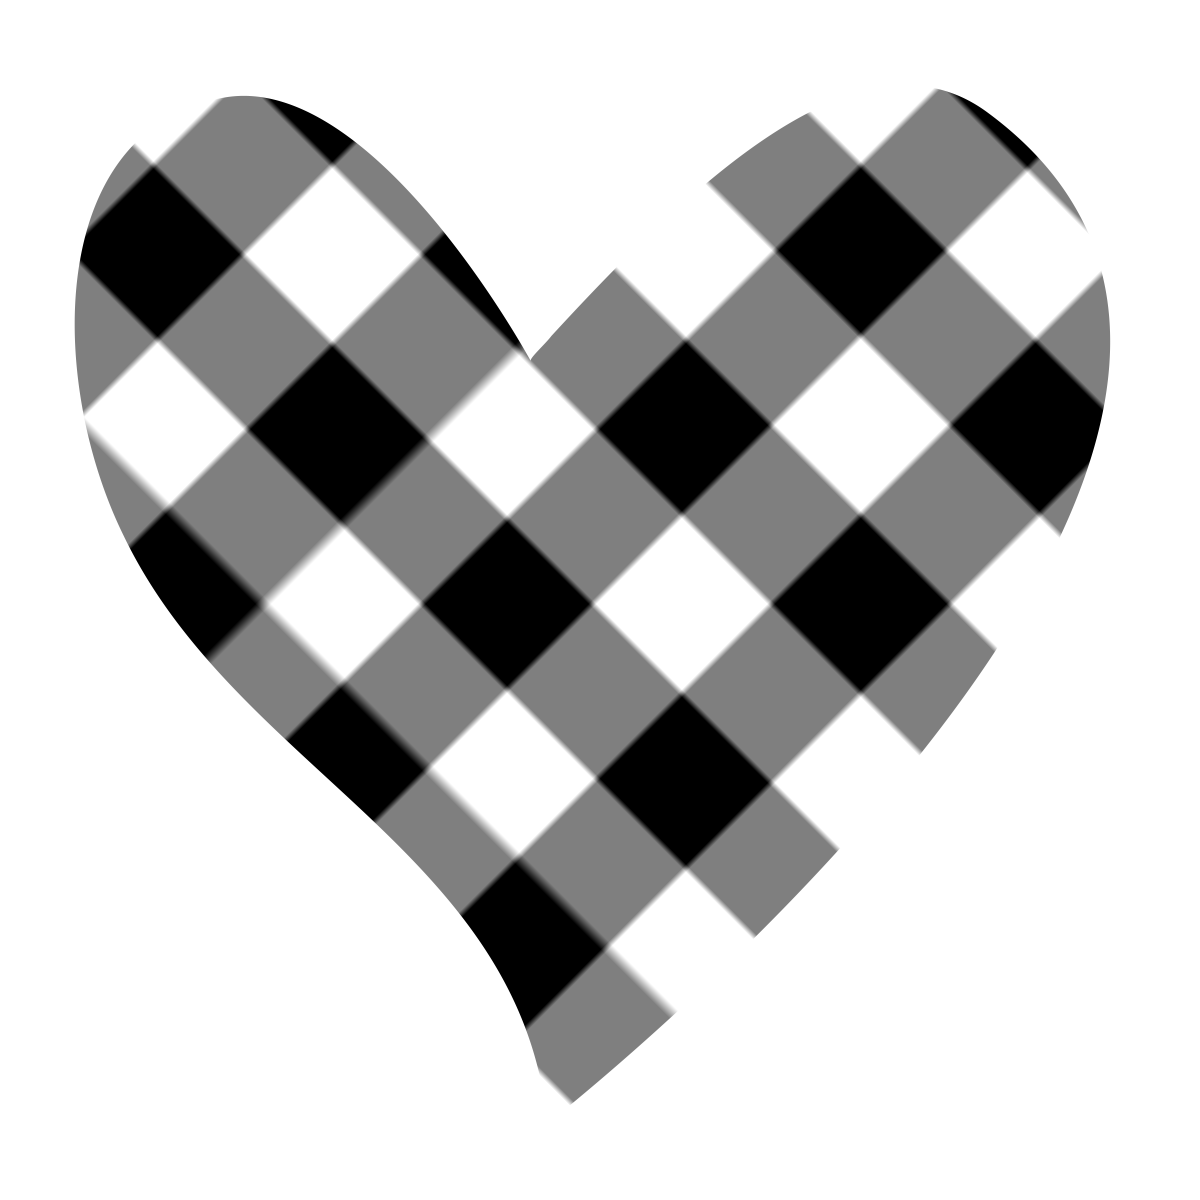 Hearts clipart cookie. Best black and white